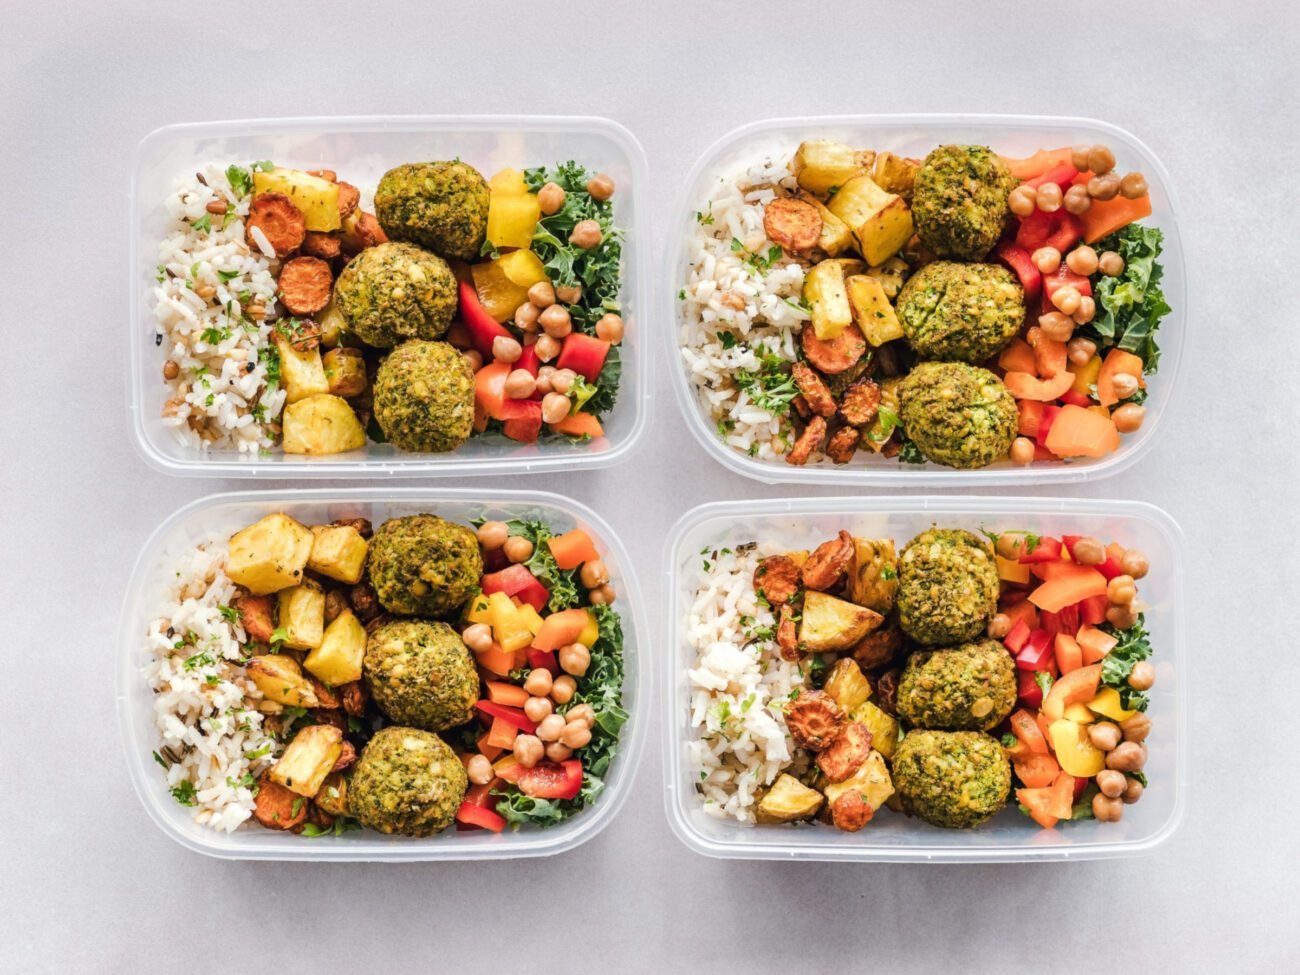 Never waste another meal or go through Tupperware like underwear again! Buy the best microwavable, sustainable containers to store food with these tips.